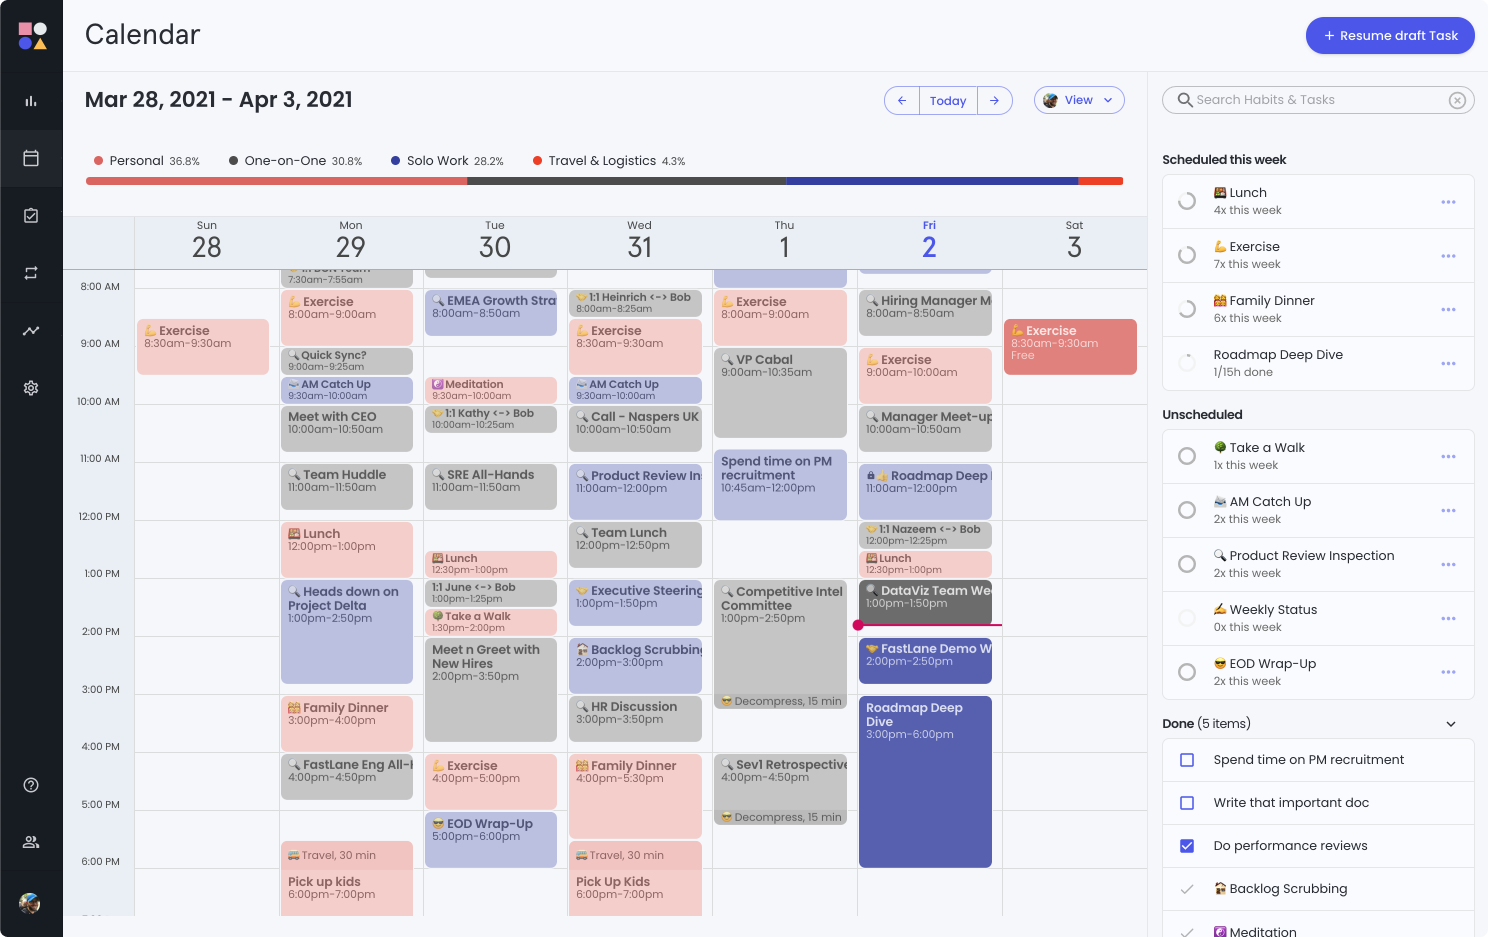 Announcing the Planner Beta: a New Way to Manage Your Workweek